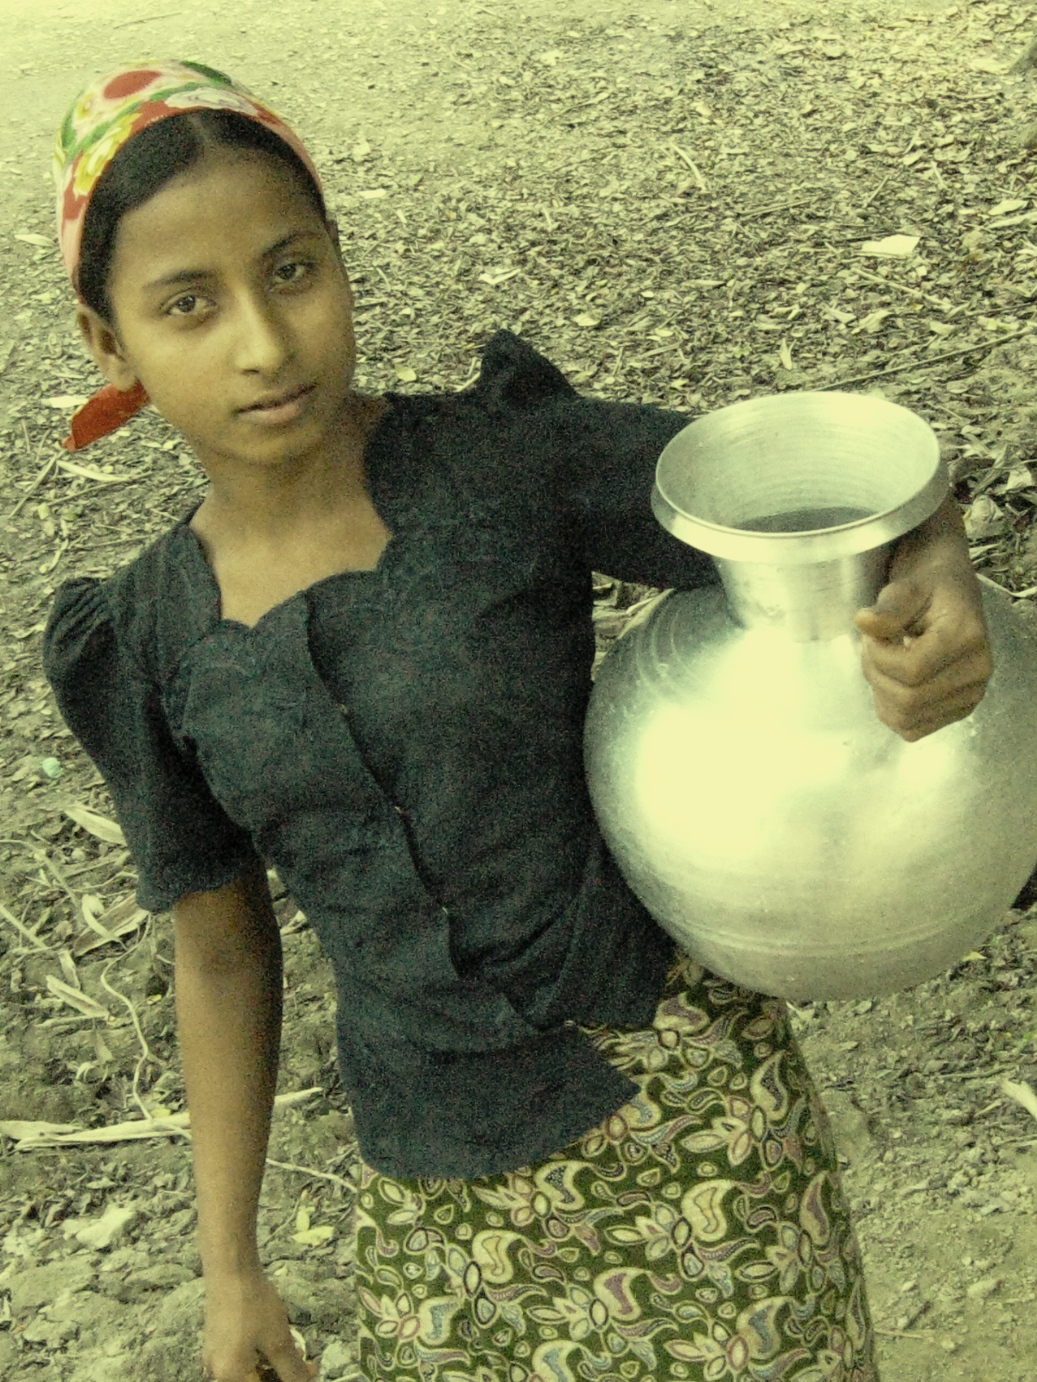 A Rohingya girl in Myanmar's northern Rakhine State